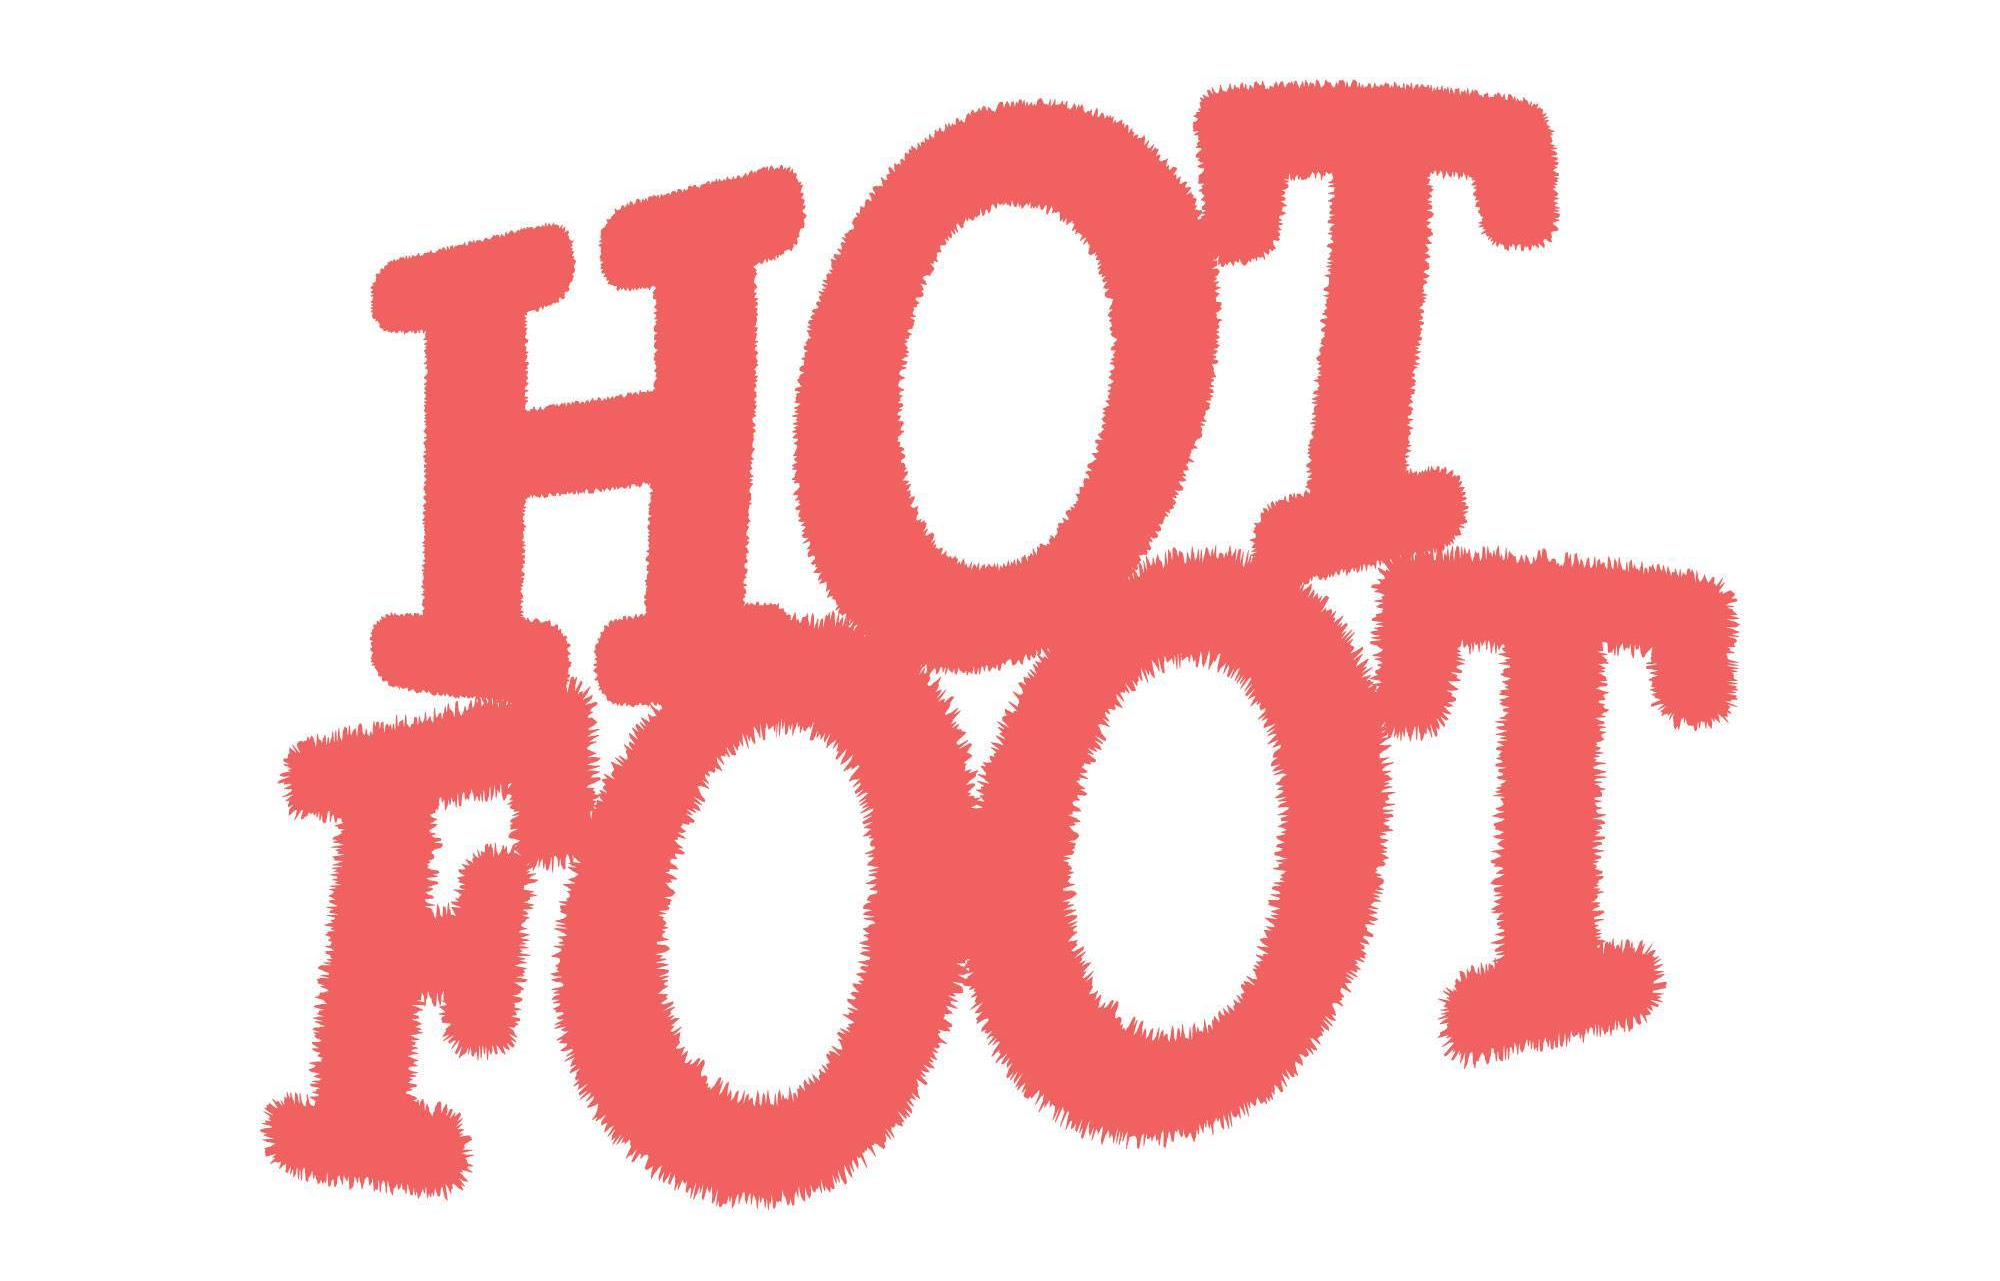 The Aston Shuffle approved new Canberra house music record label HOT FOOT RECORDS reveals an assured and eclectic 4-track debut VA001